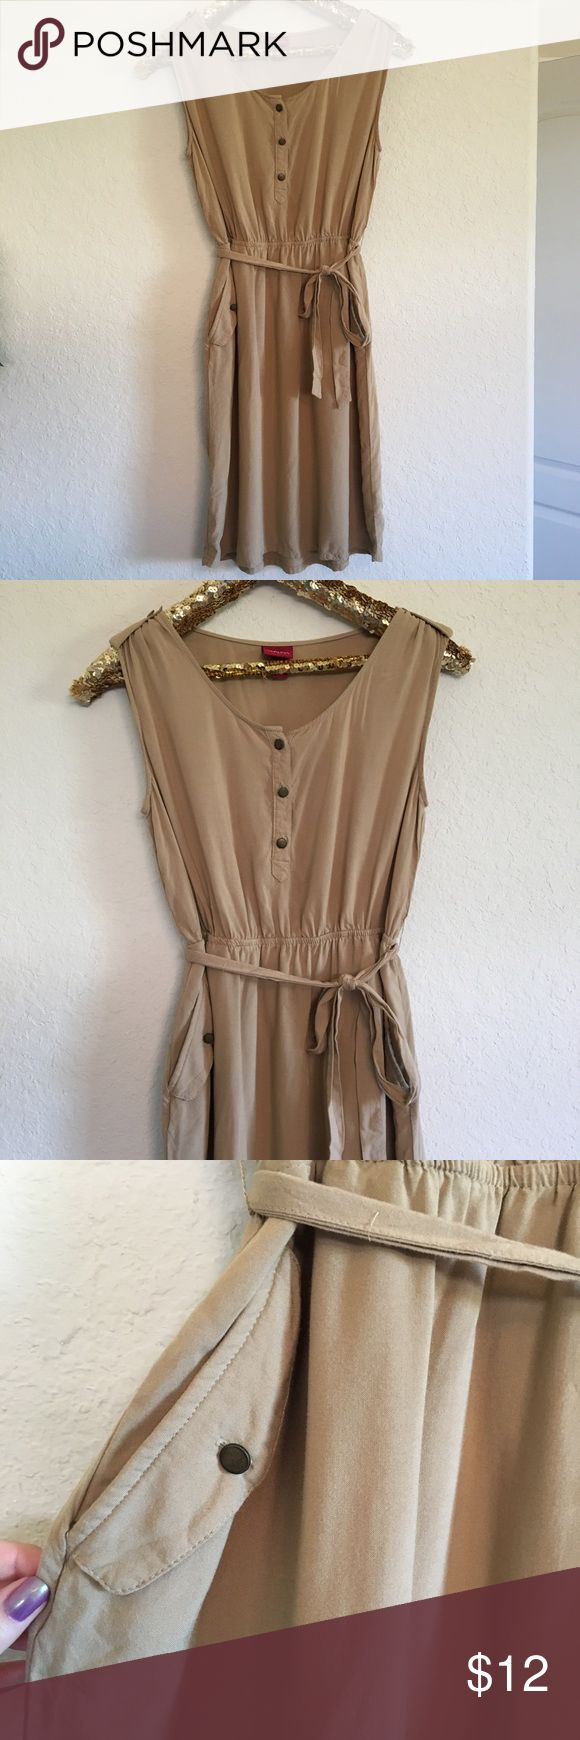 Merona Tan Dress This Merona dress is in great condition, only worn a few times! This dress is so stylish and perfect for fall! It's a size xs but could easily fit a small.  🚭 From a smoke-free home ❌ No trades or off PoshMark sales 🛍 Bundles welcome and encouraged 👌🏻 Reasonable offers welcome ⚡️ Same/next day shipping 🌬 All items are steamed before shipping Merona Dresses